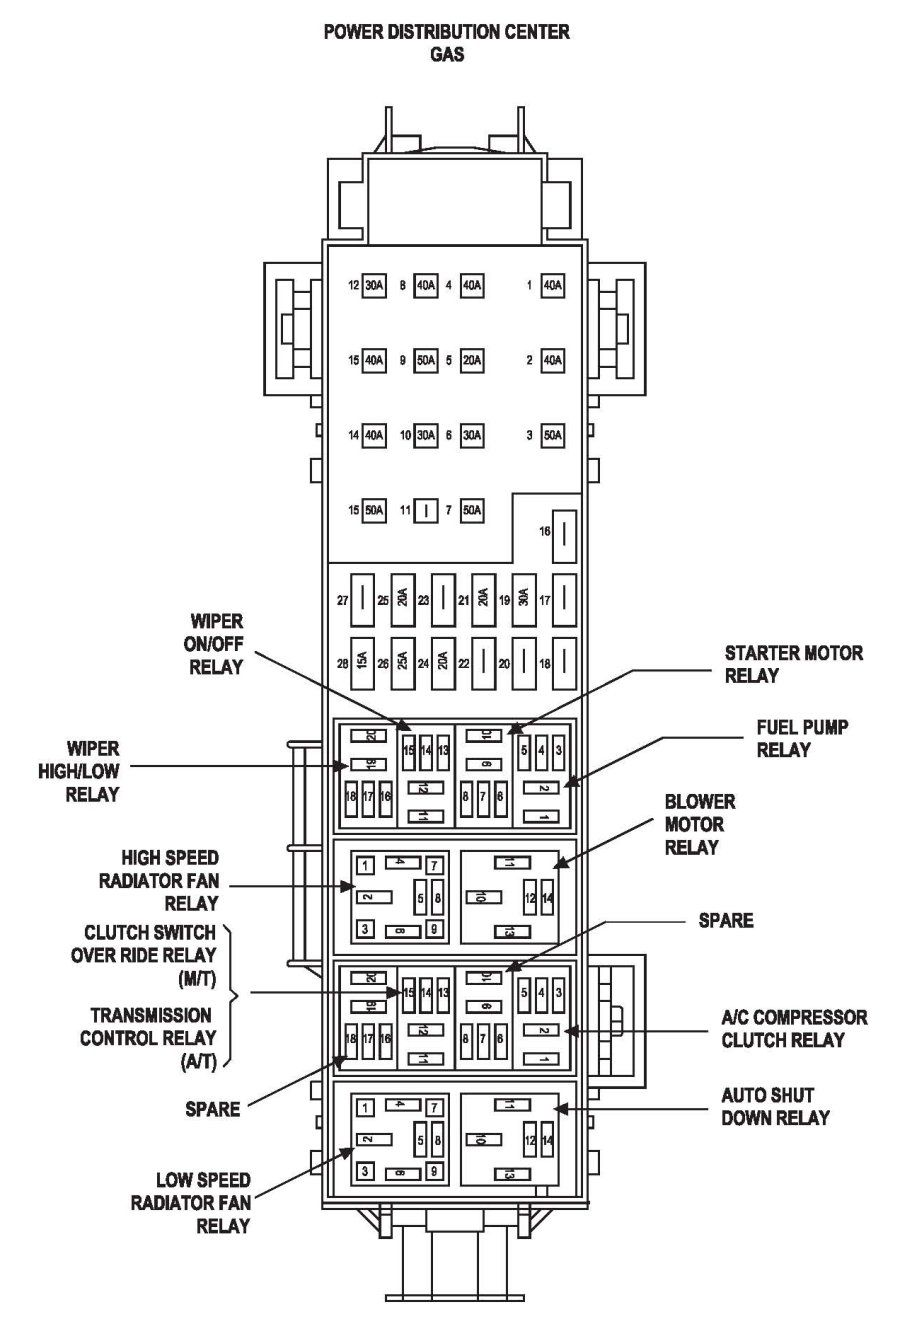 2004 Jeep Liberty Fuse Box Wiring Diagram Schematics 2002 Grand Marquis Image Details 2006 Layout